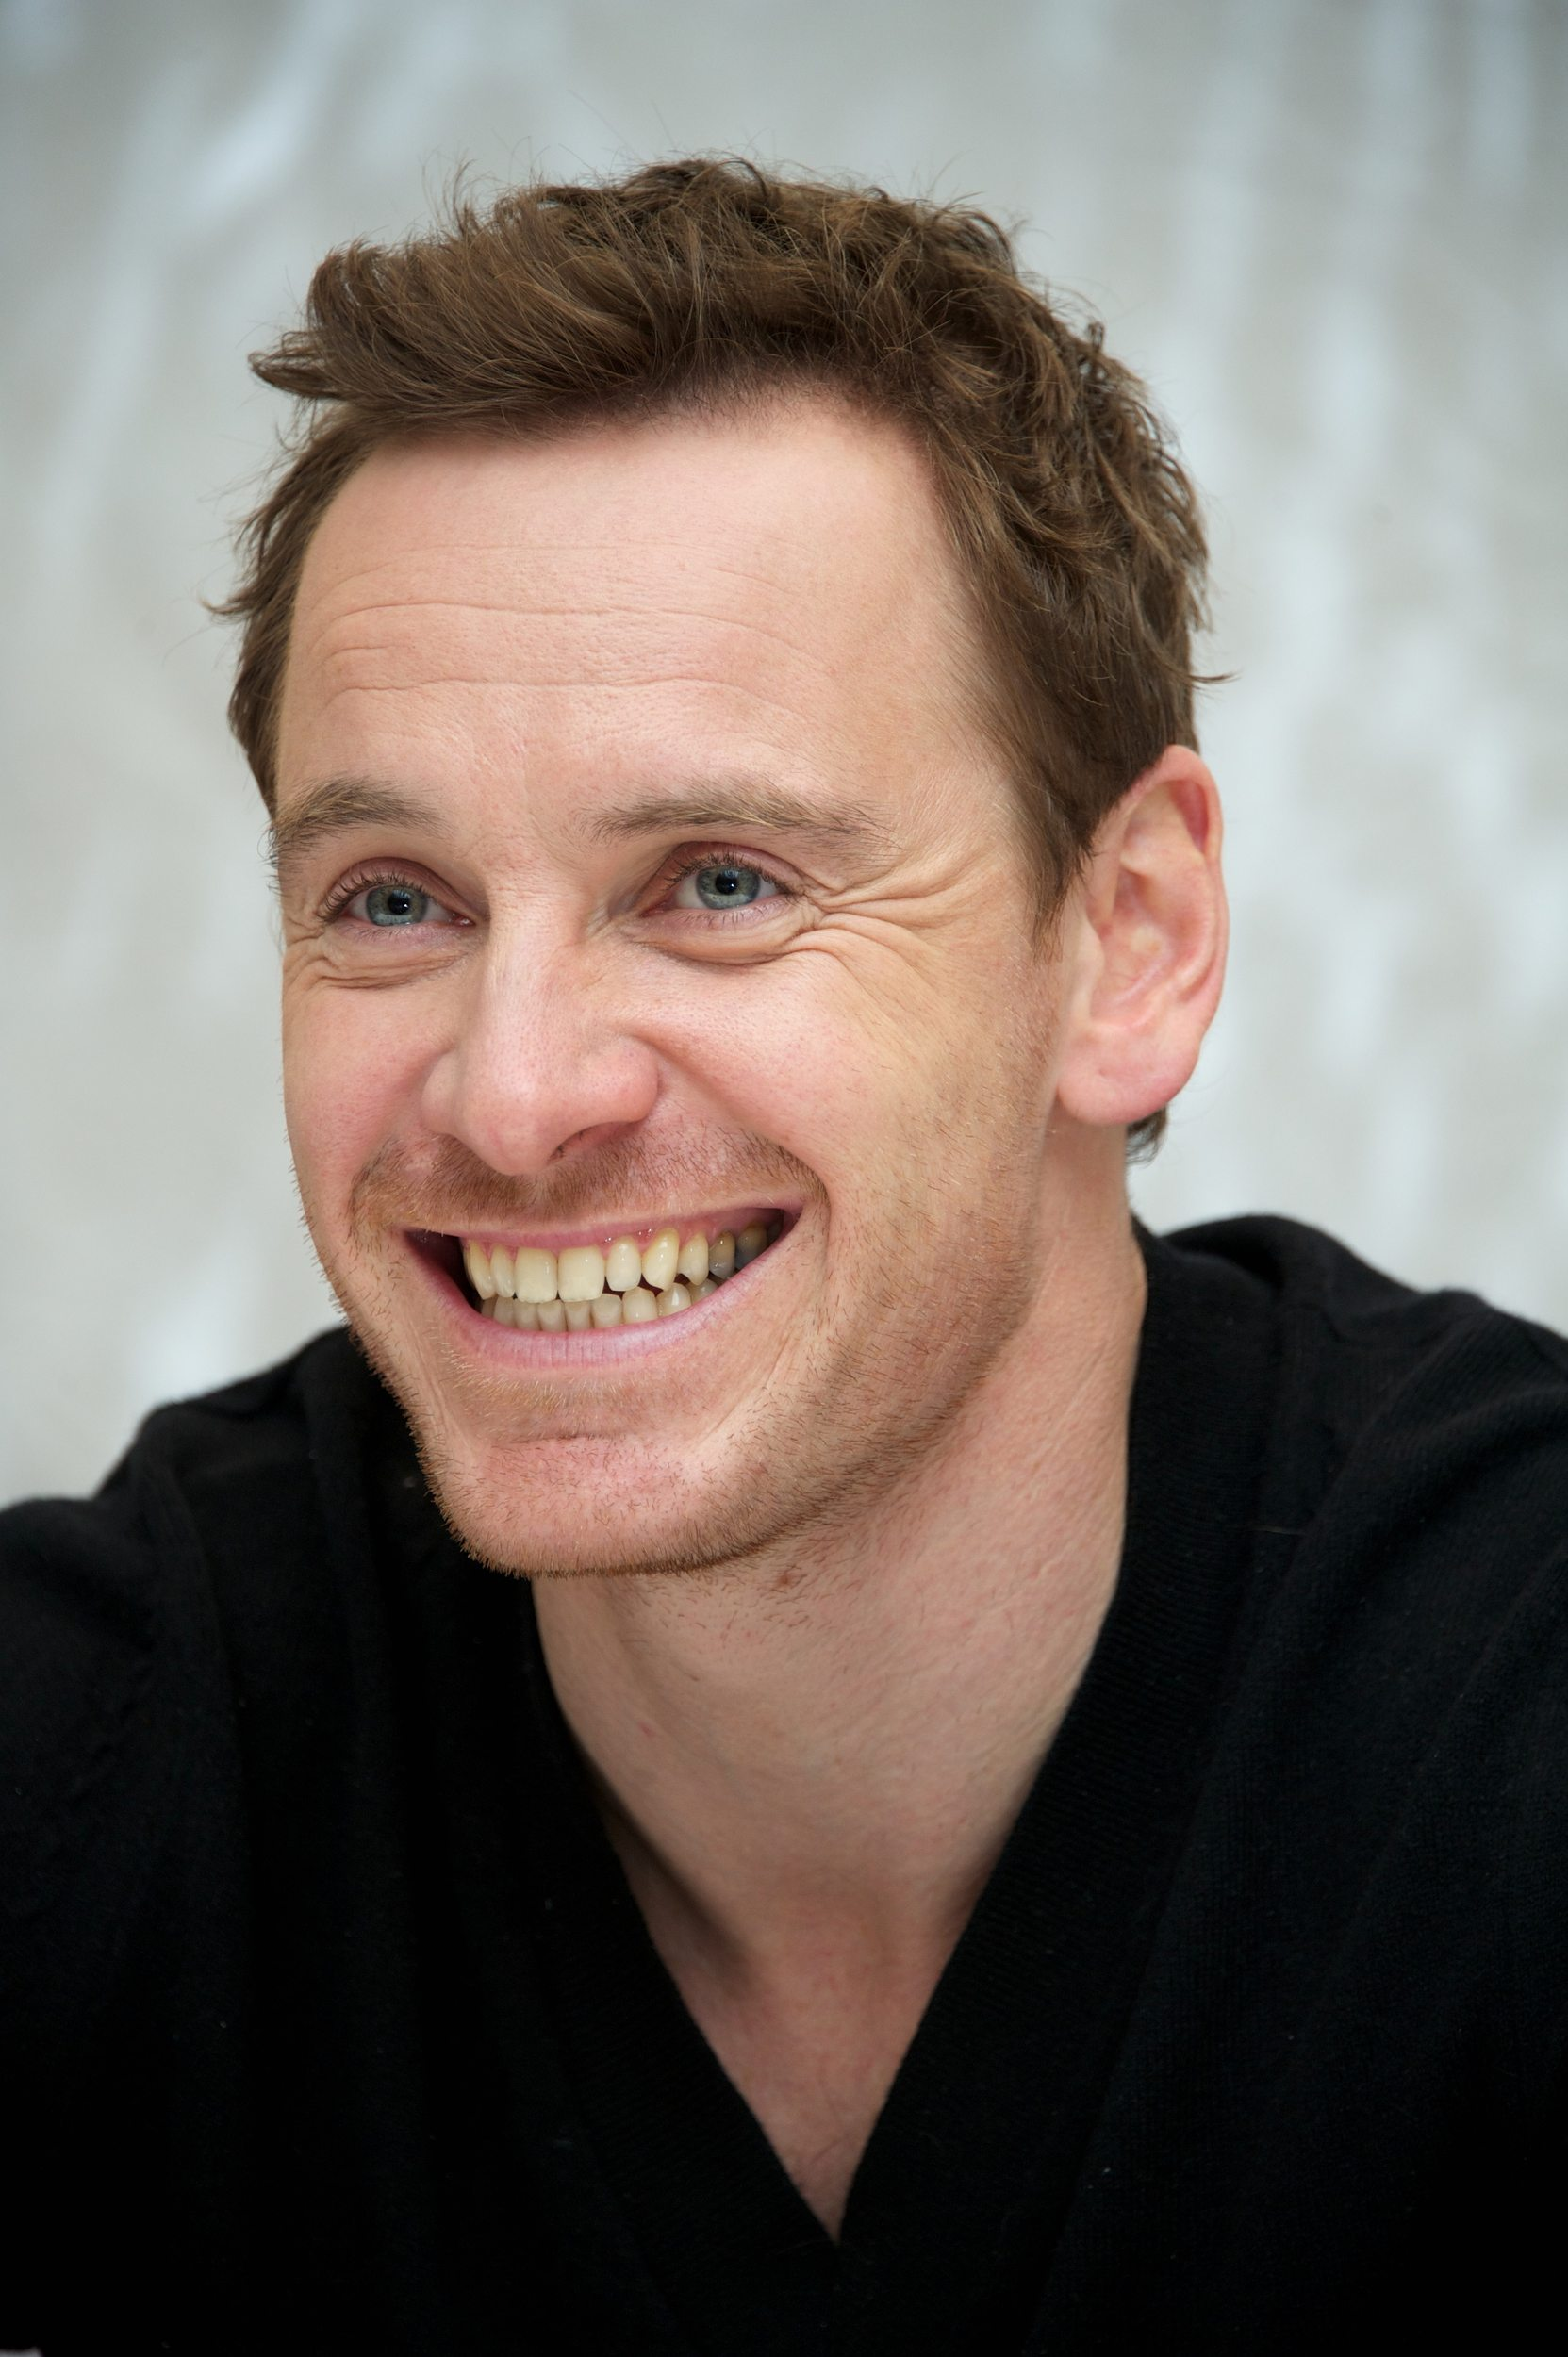 Michael Fassbender #855439 Wallpapers High Quality ... Michael Fassbender